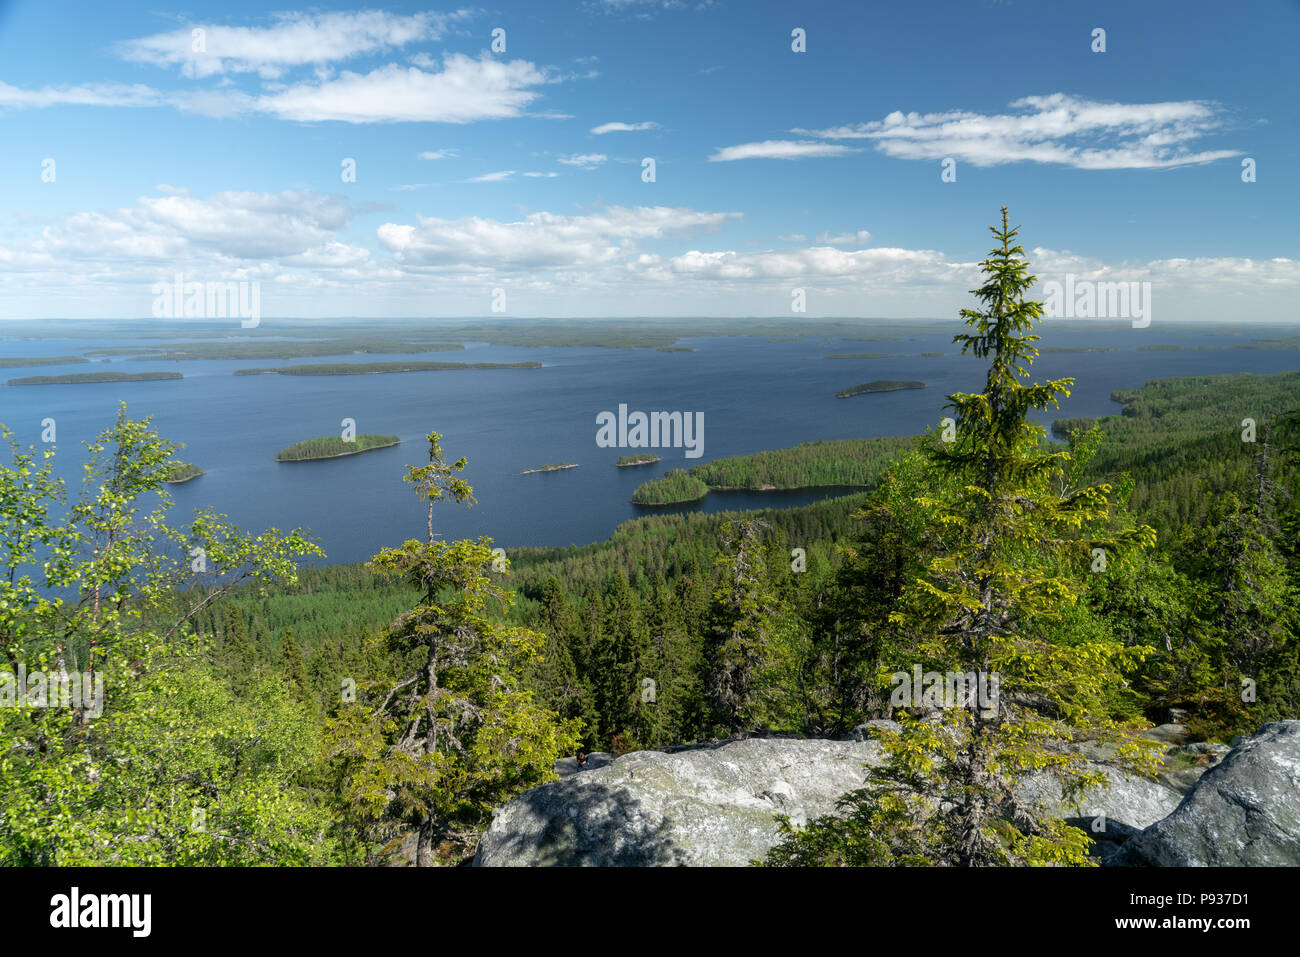 Landscape view over lake Pielinen in Koli National Park in Finland at sunny summer day - Stock Image